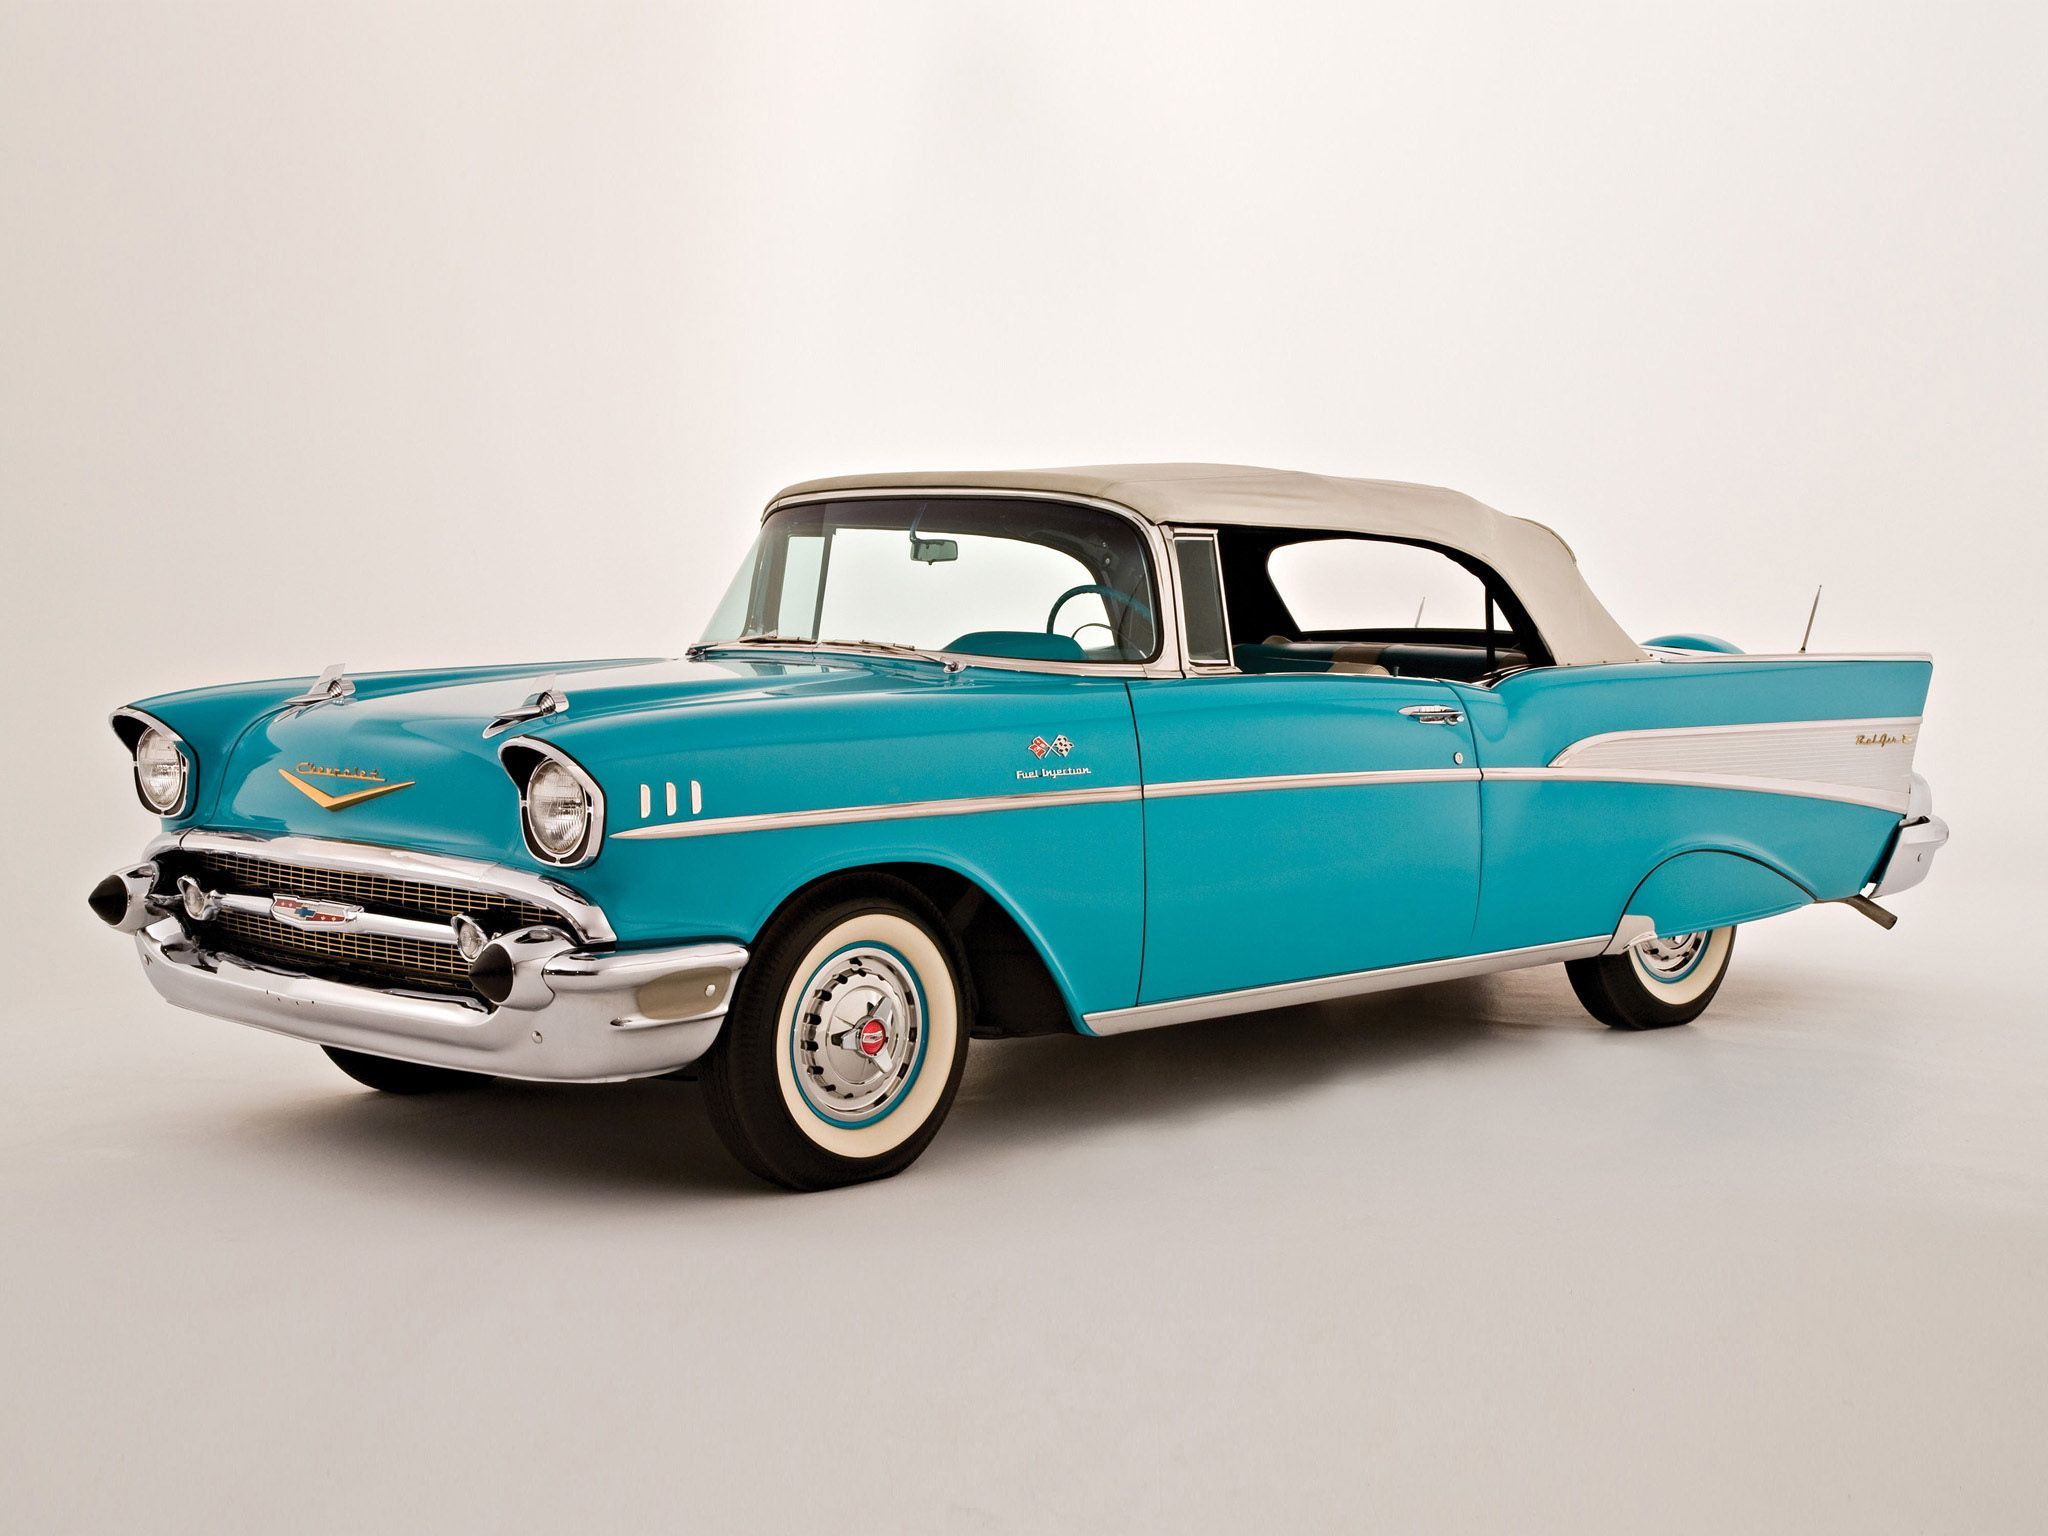 Pin by Jacob Plante on 1957 Chevrolet bel air.